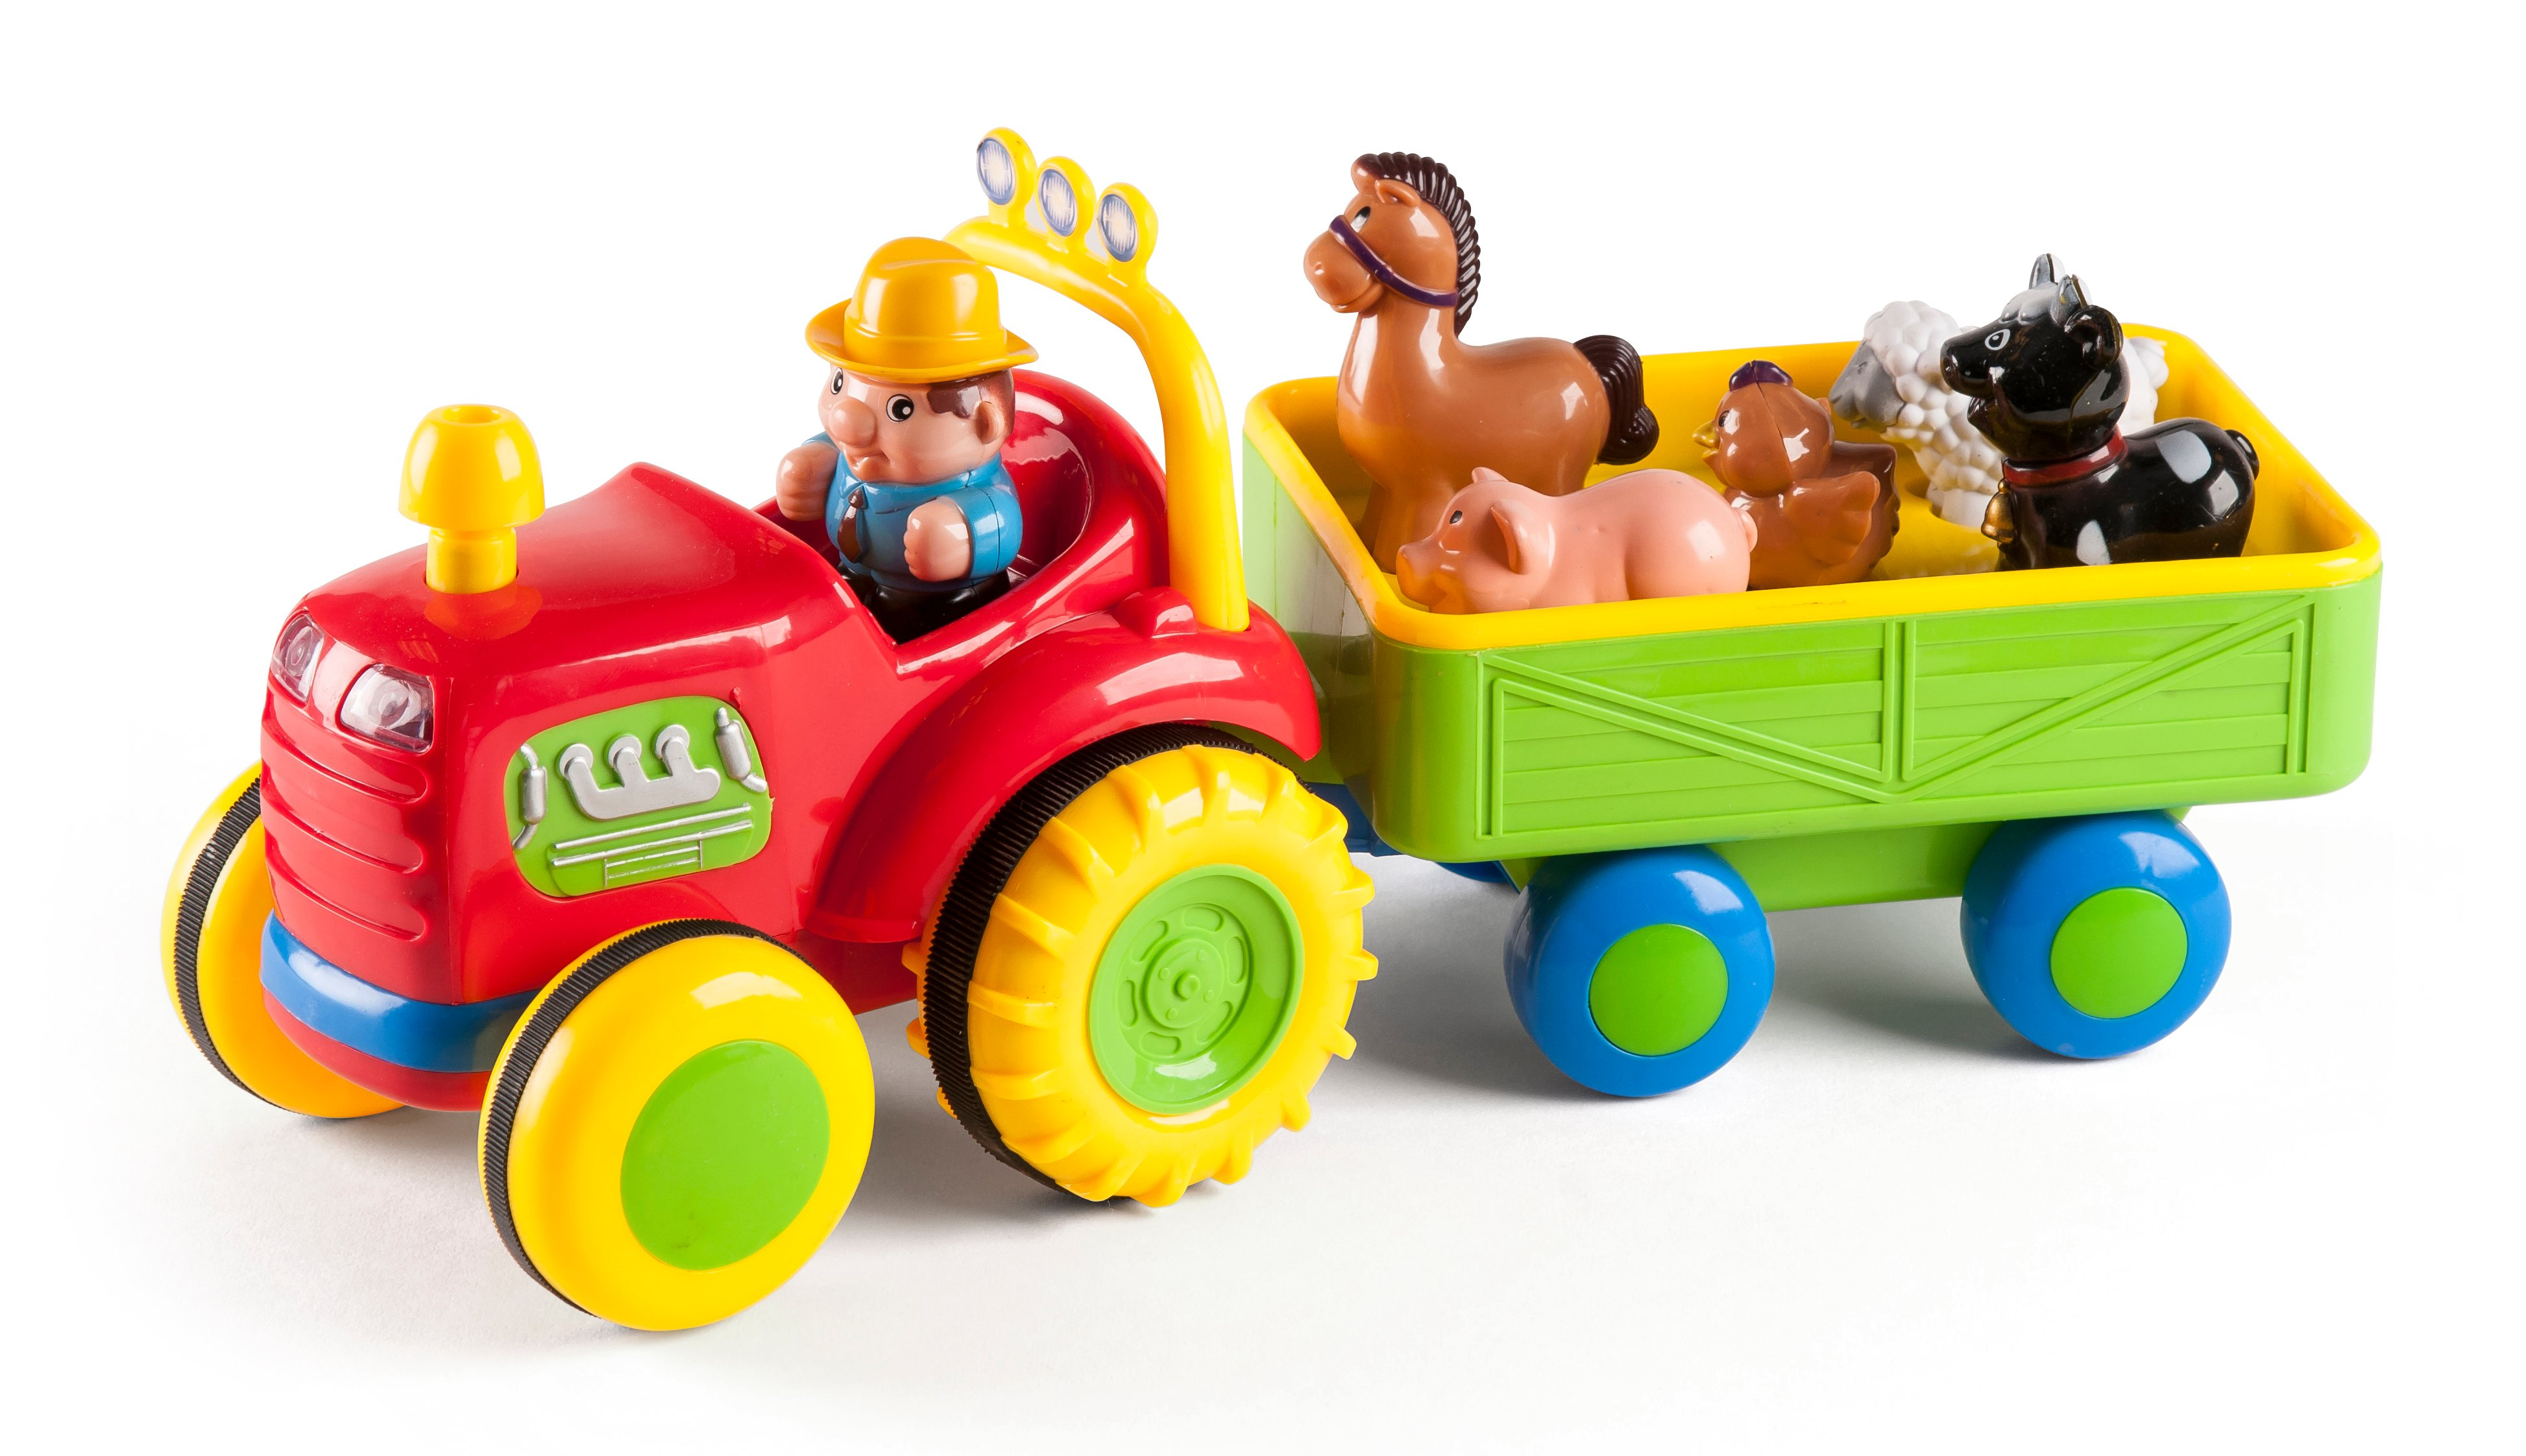 B Beez - Tractor with farm animals (56030)